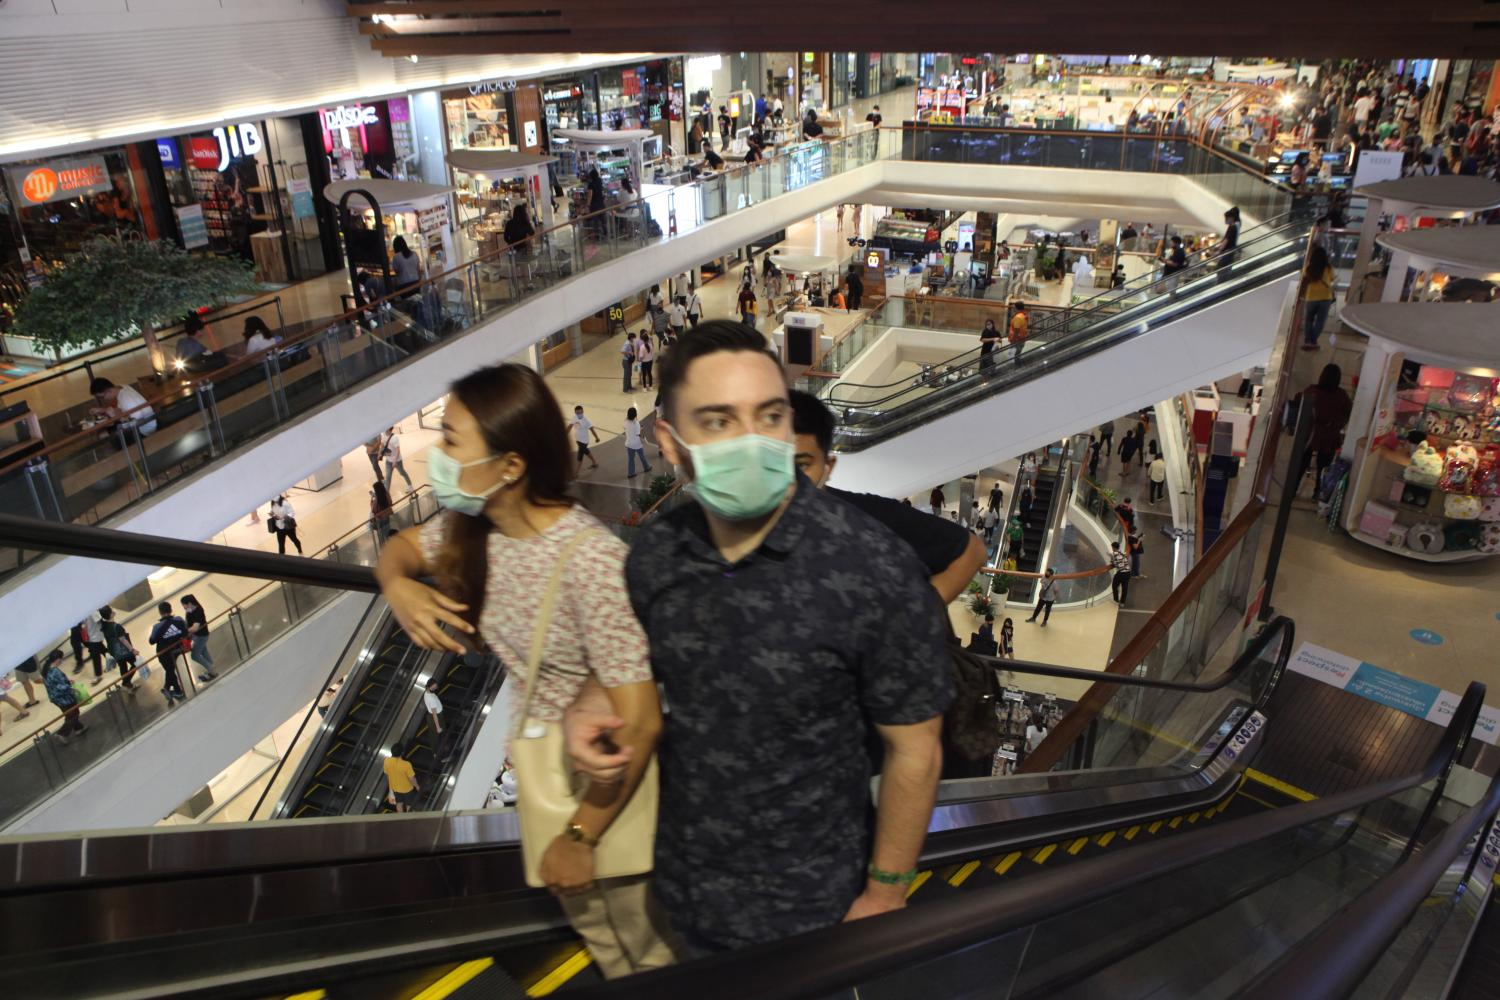 Shoppers at Central Lat Phrao observe social distancing measures by wearing face masks and keeping distance from strangers. (Photo by Arnun Chonmahatrakool)